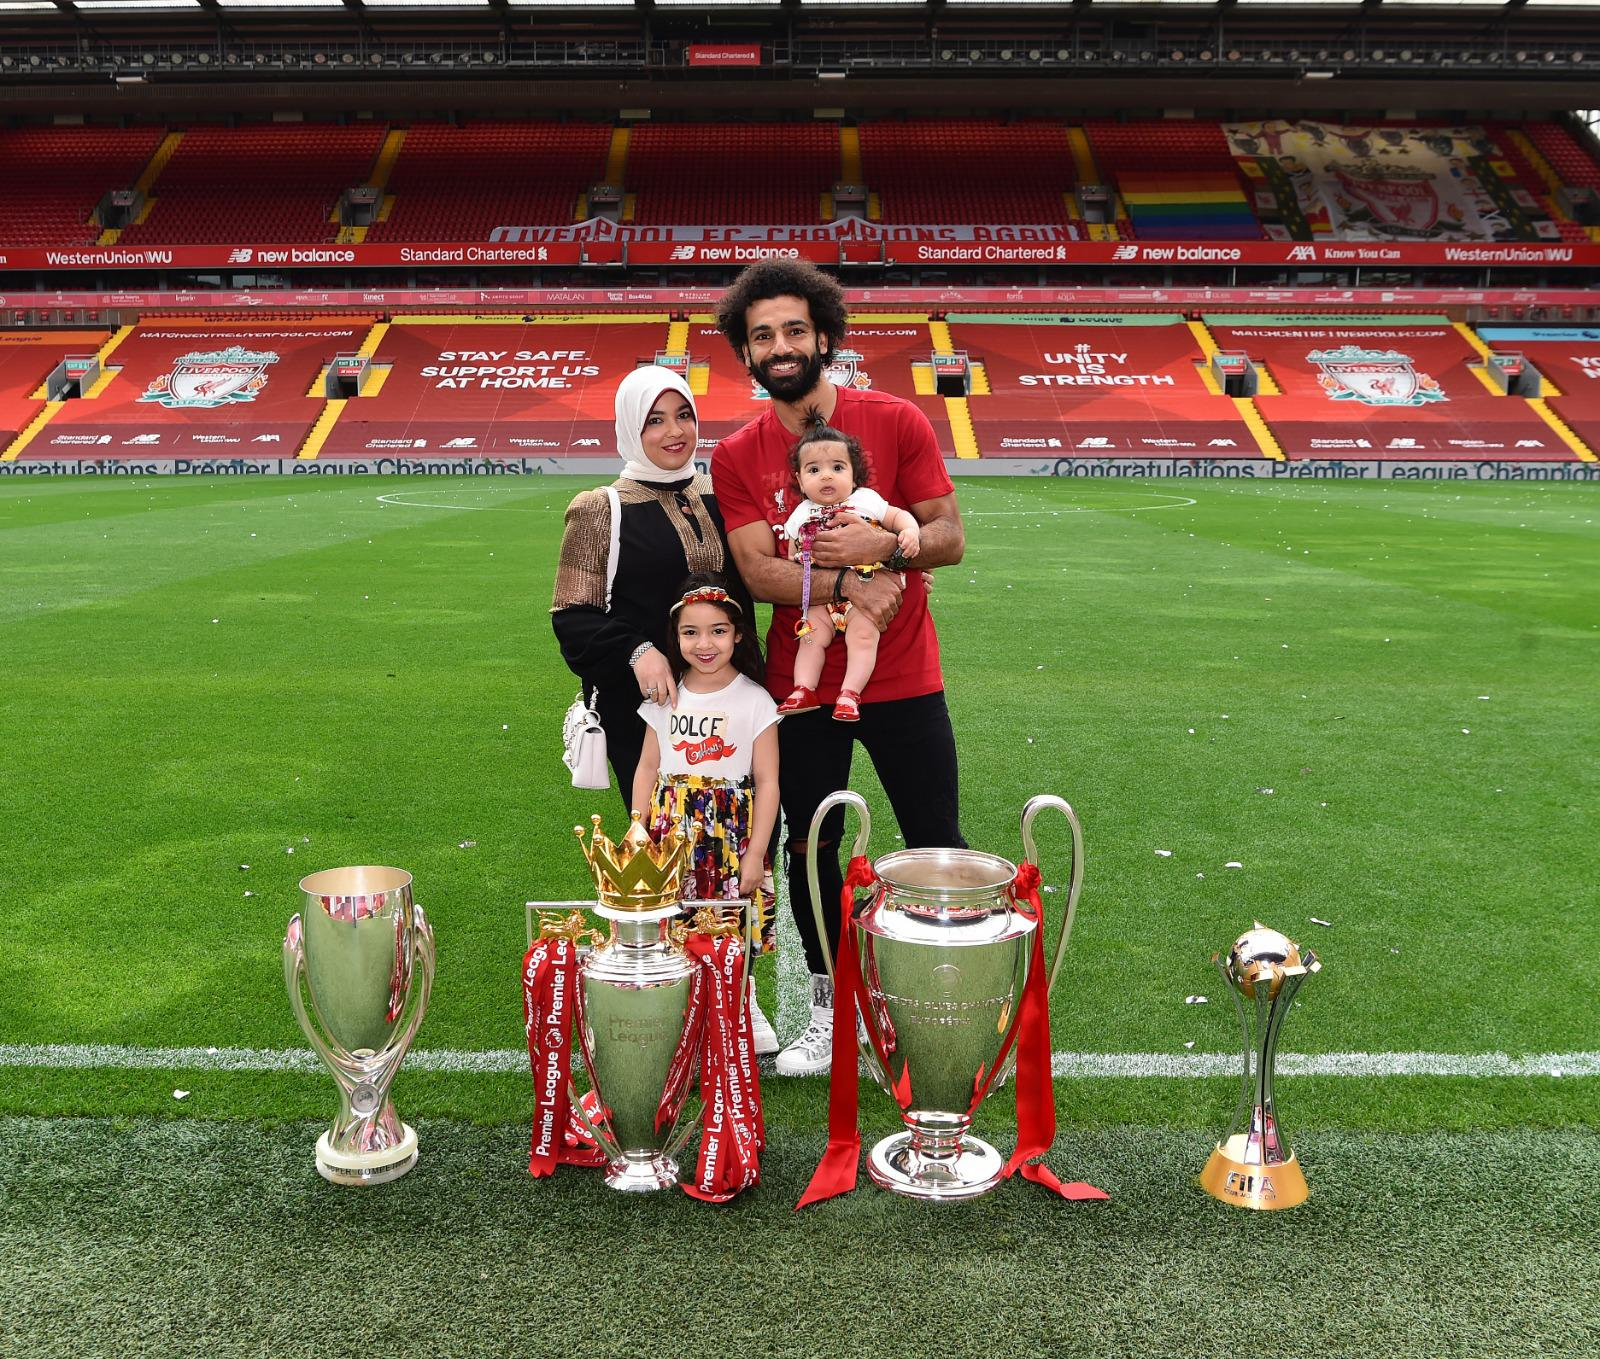 Mo Salah hat trick, mo salah leeds, mo salah english champion, mo salah liverpool leeds wife daughter